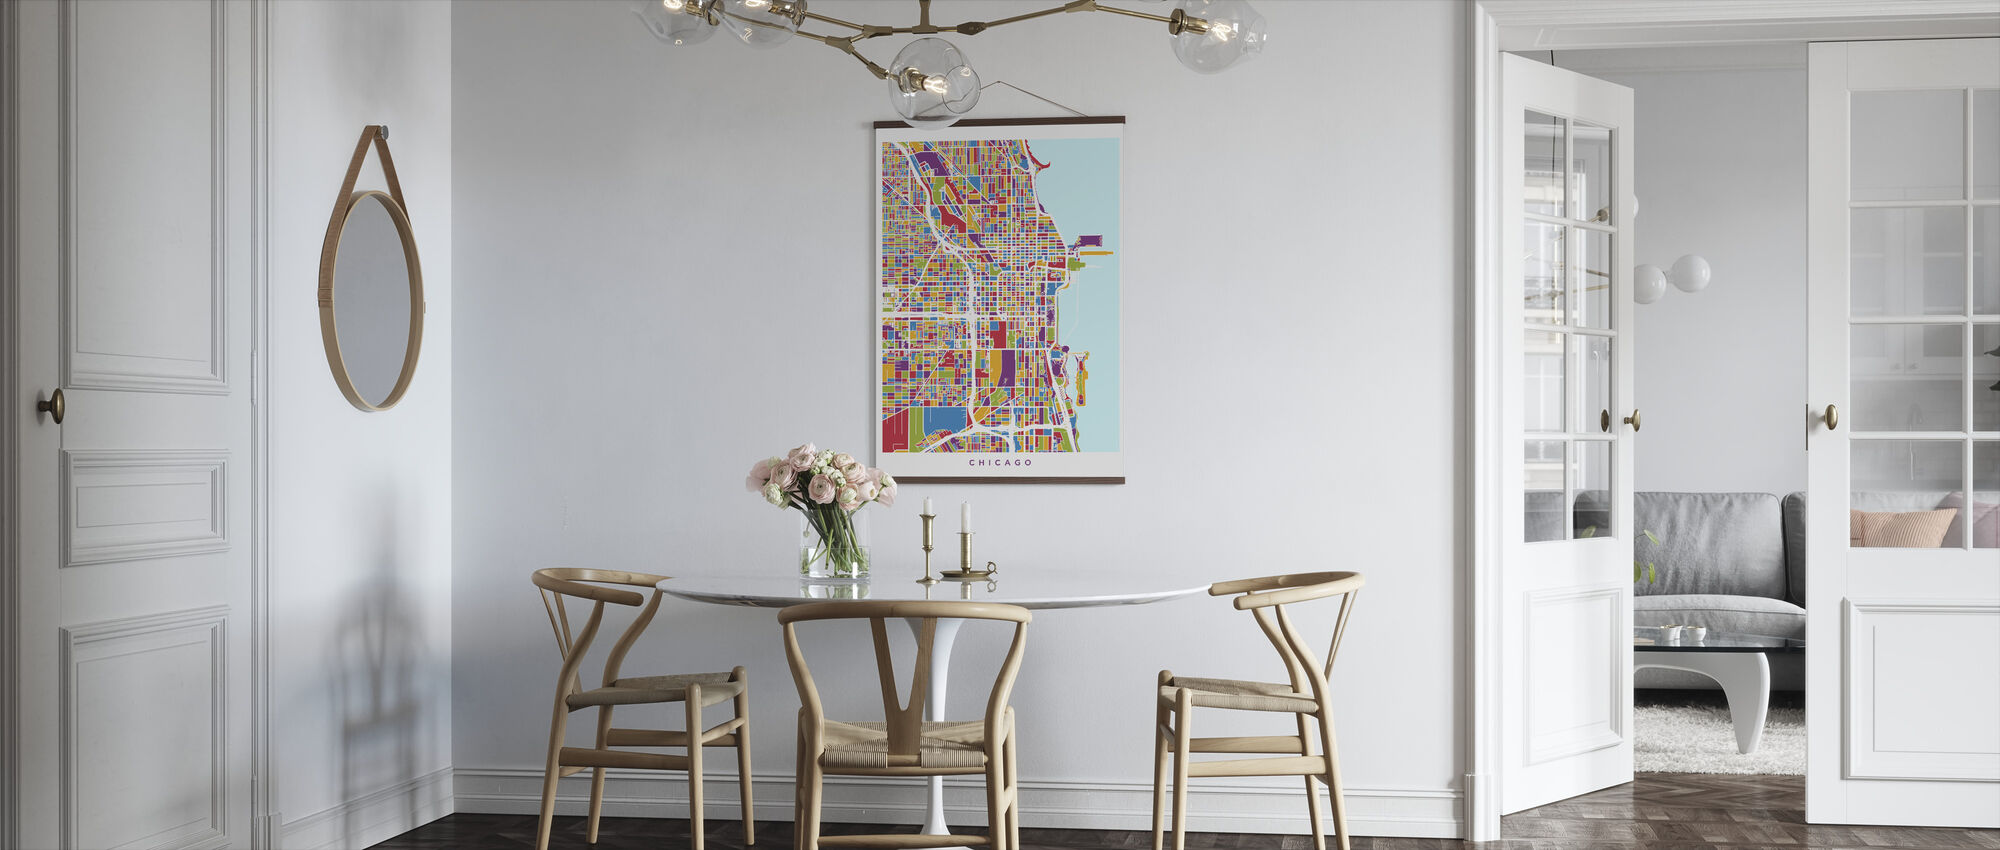 Chicago City Street Kaart - Poster - Keuken